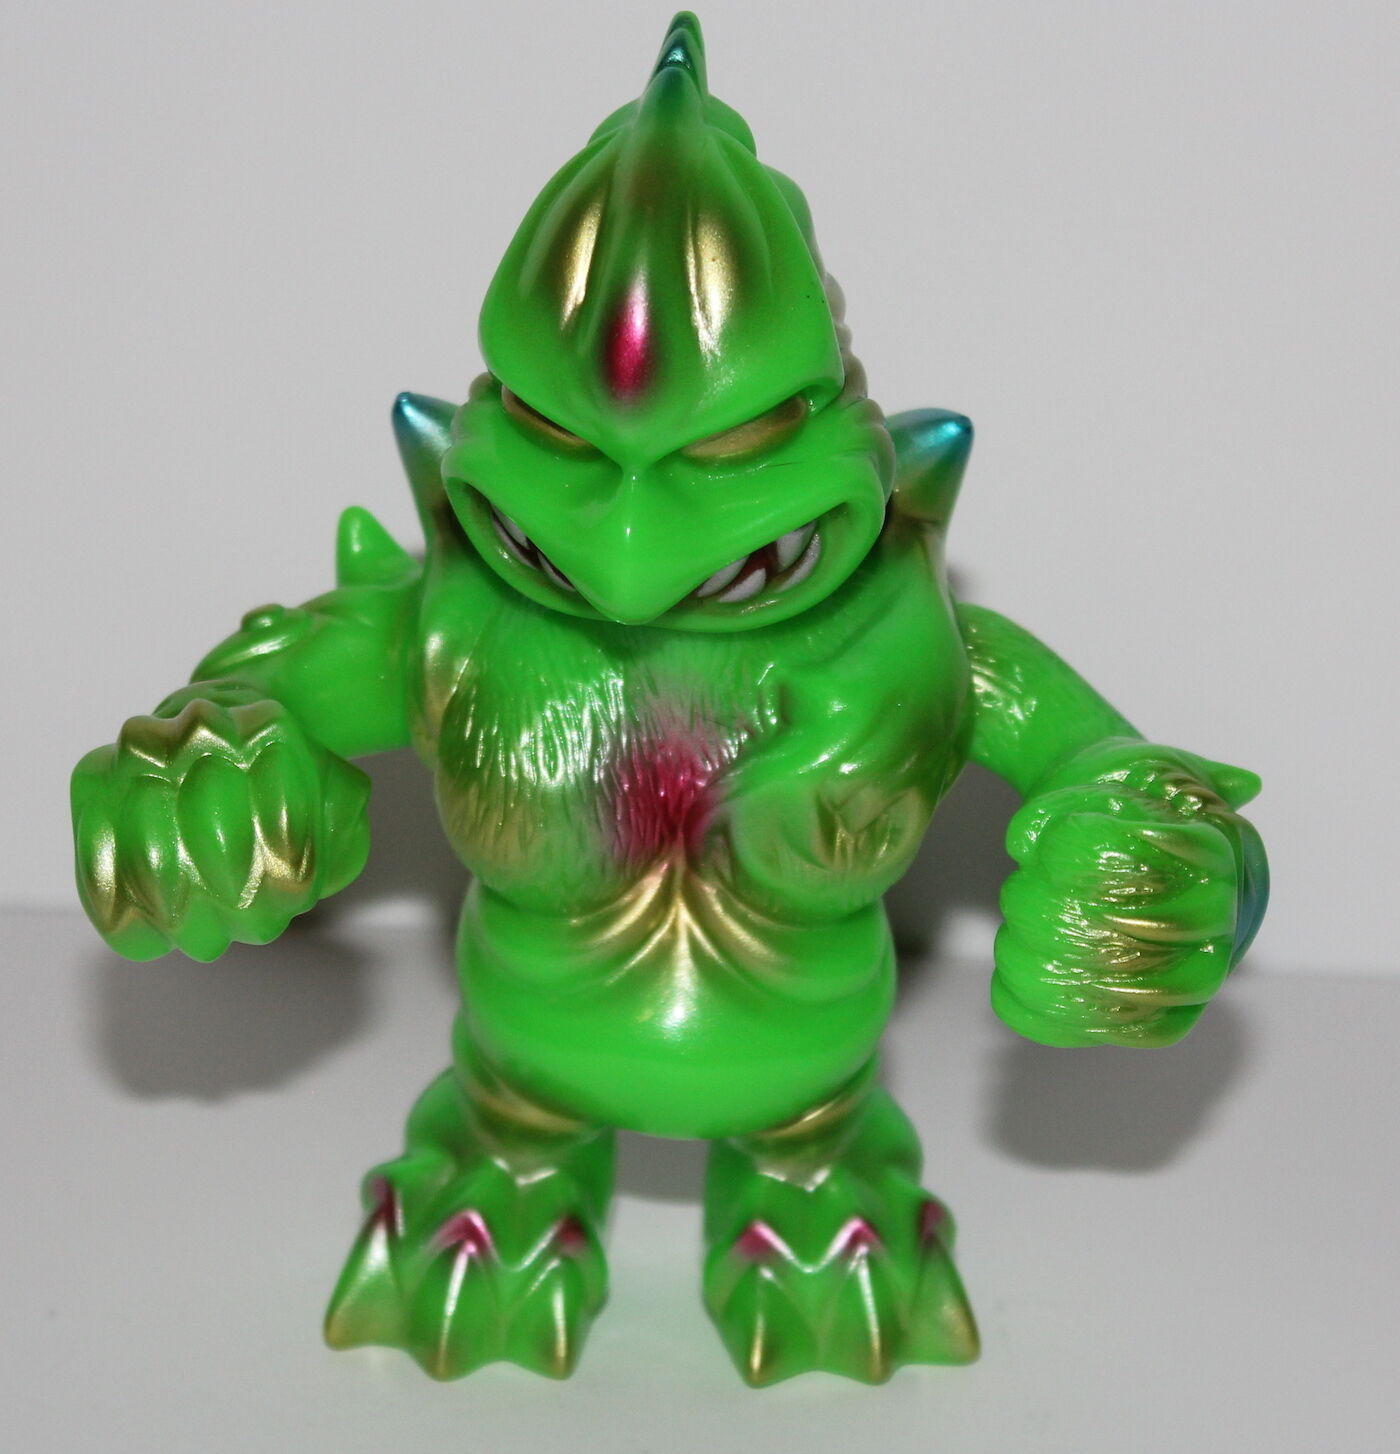 Cronic Zyurai Asu Kaiju Figure Toy Collectible